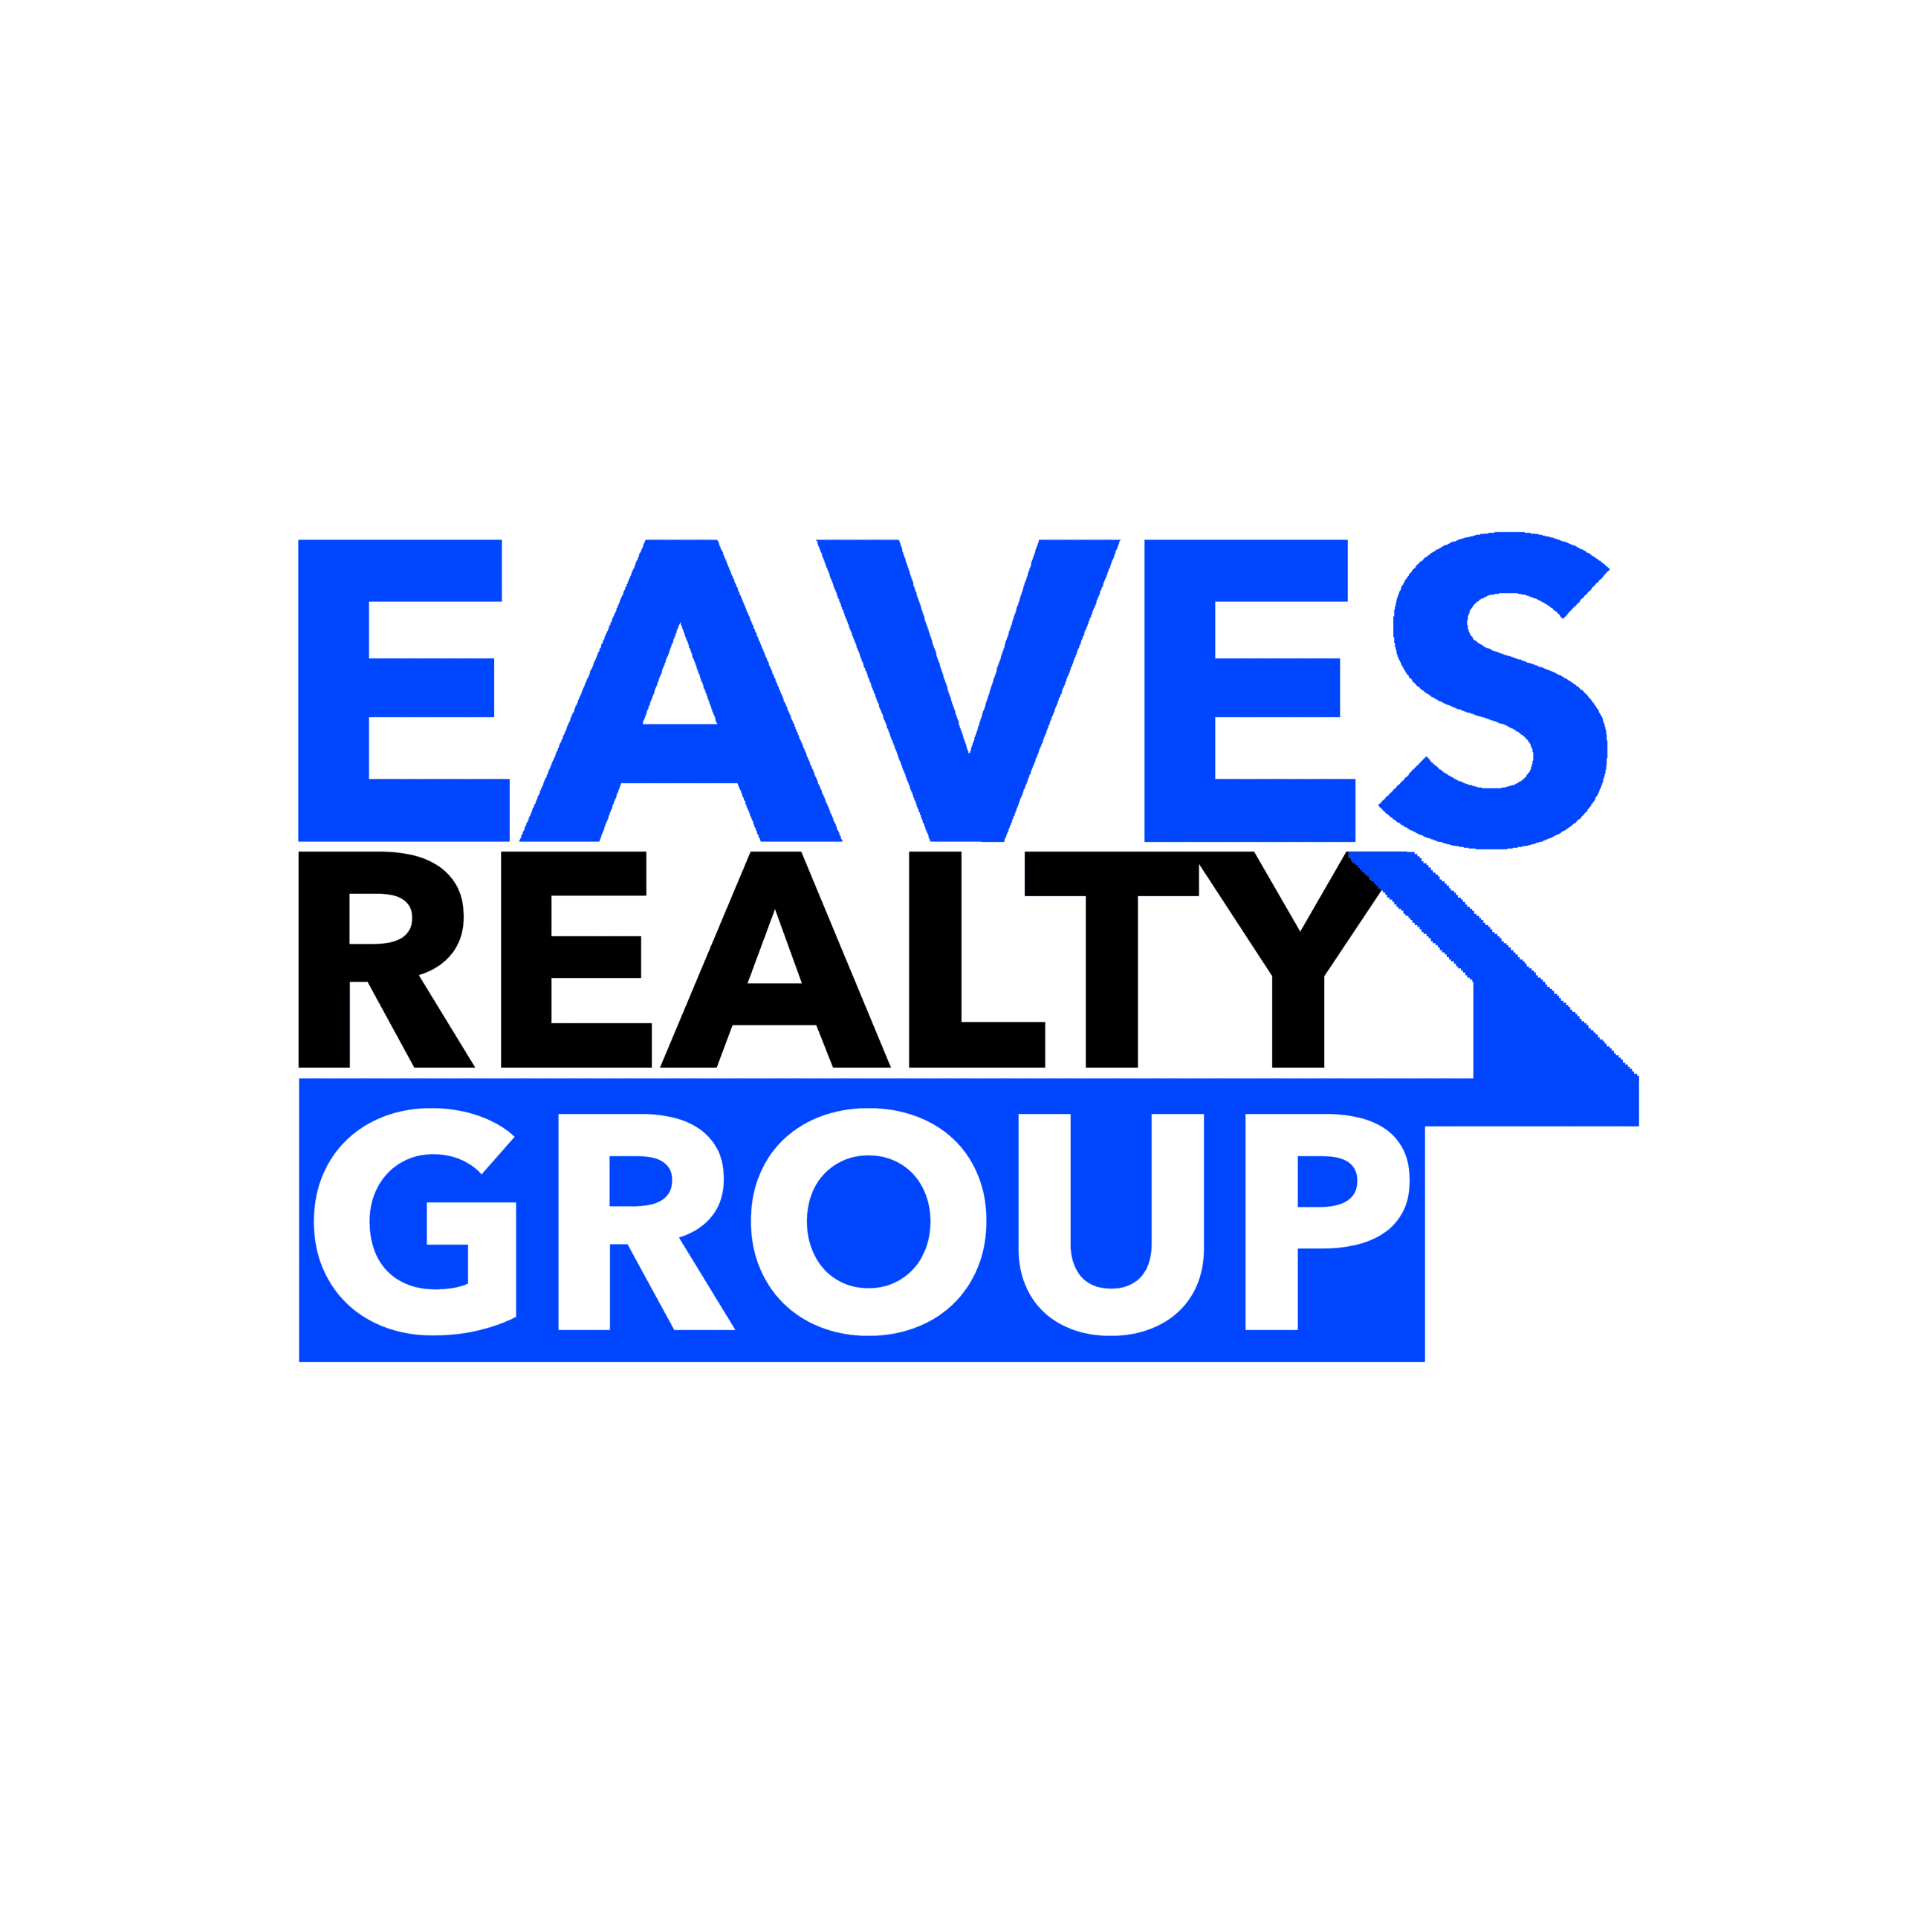 Eaves Realty Group White Background